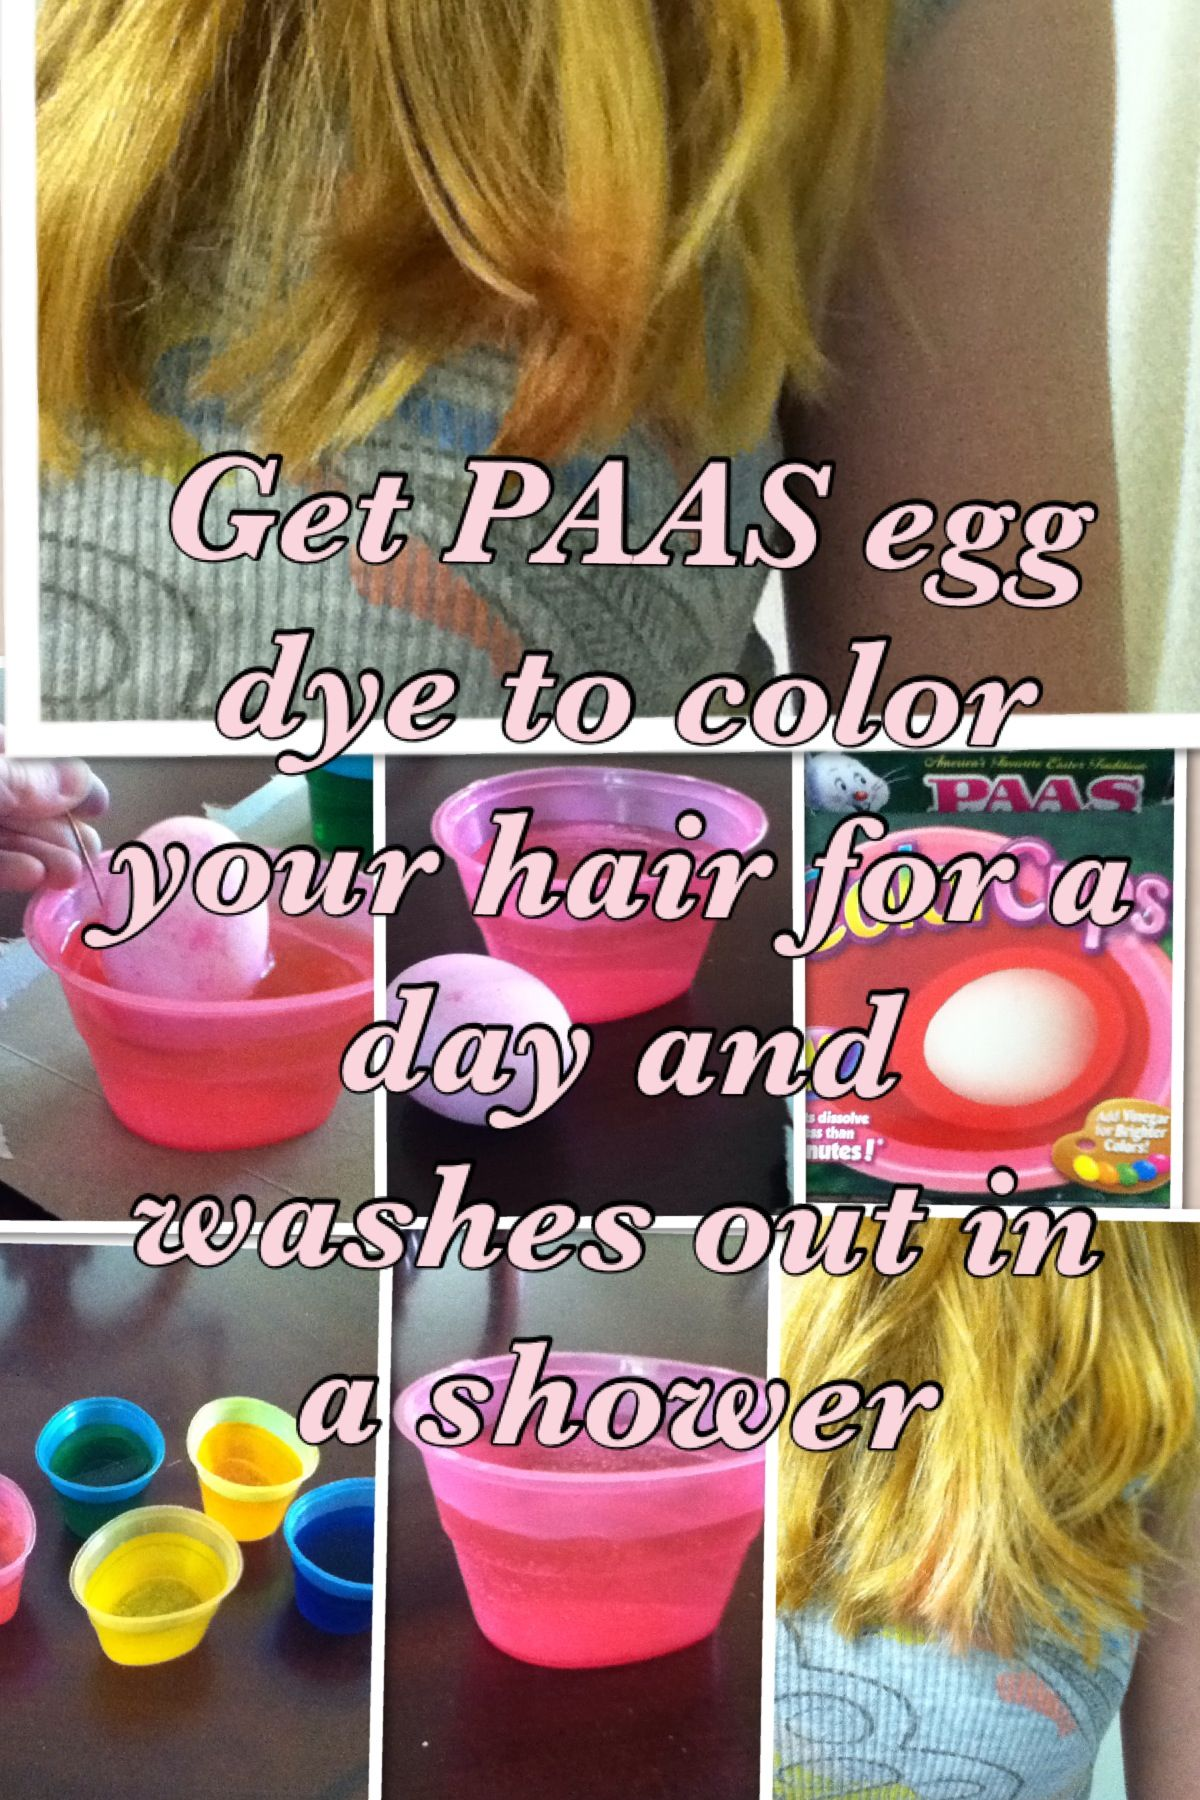 Get paas egg dye and dip your hair into the color that you